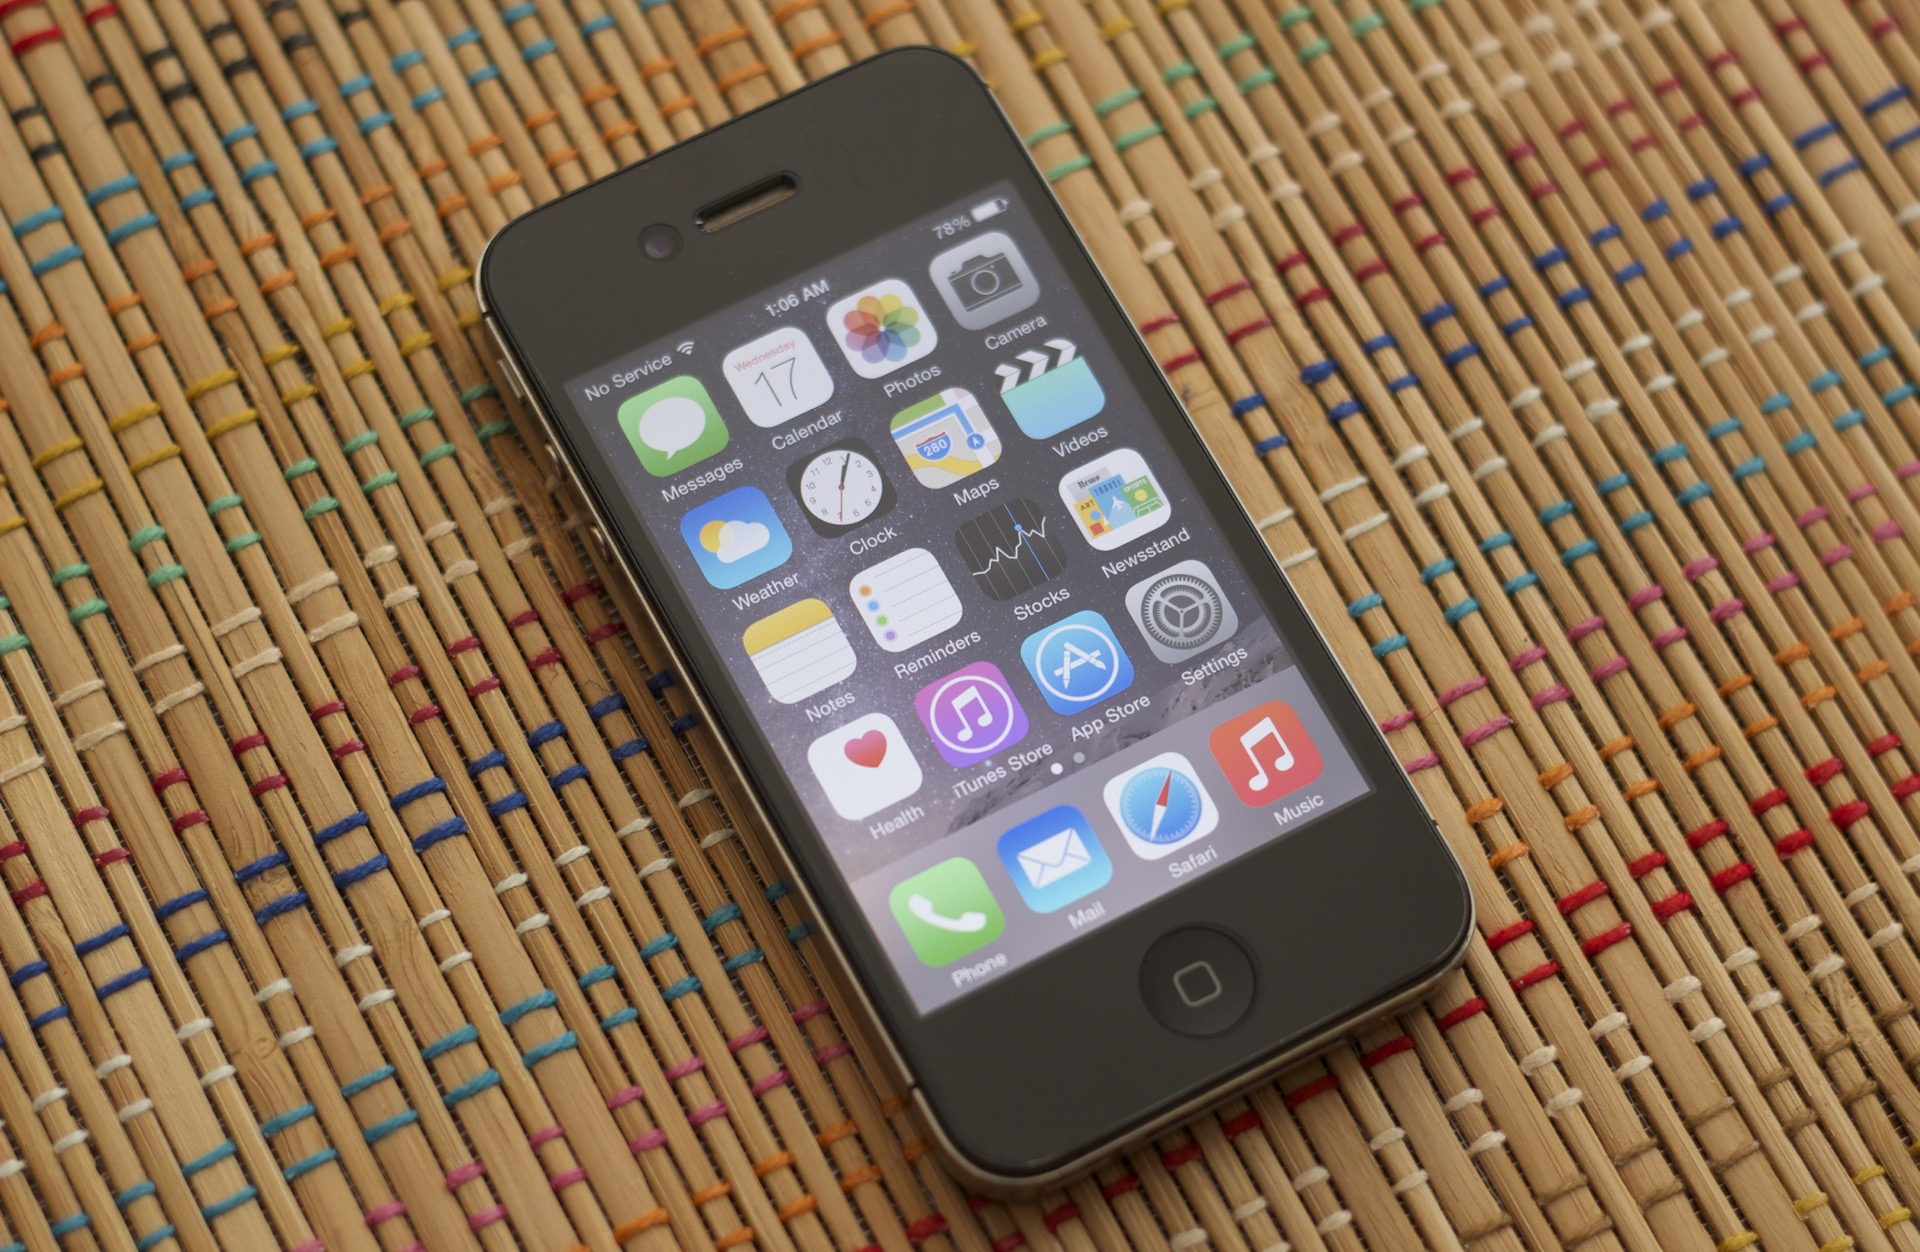 Report: iOS 9 will be optimized for older devices, including